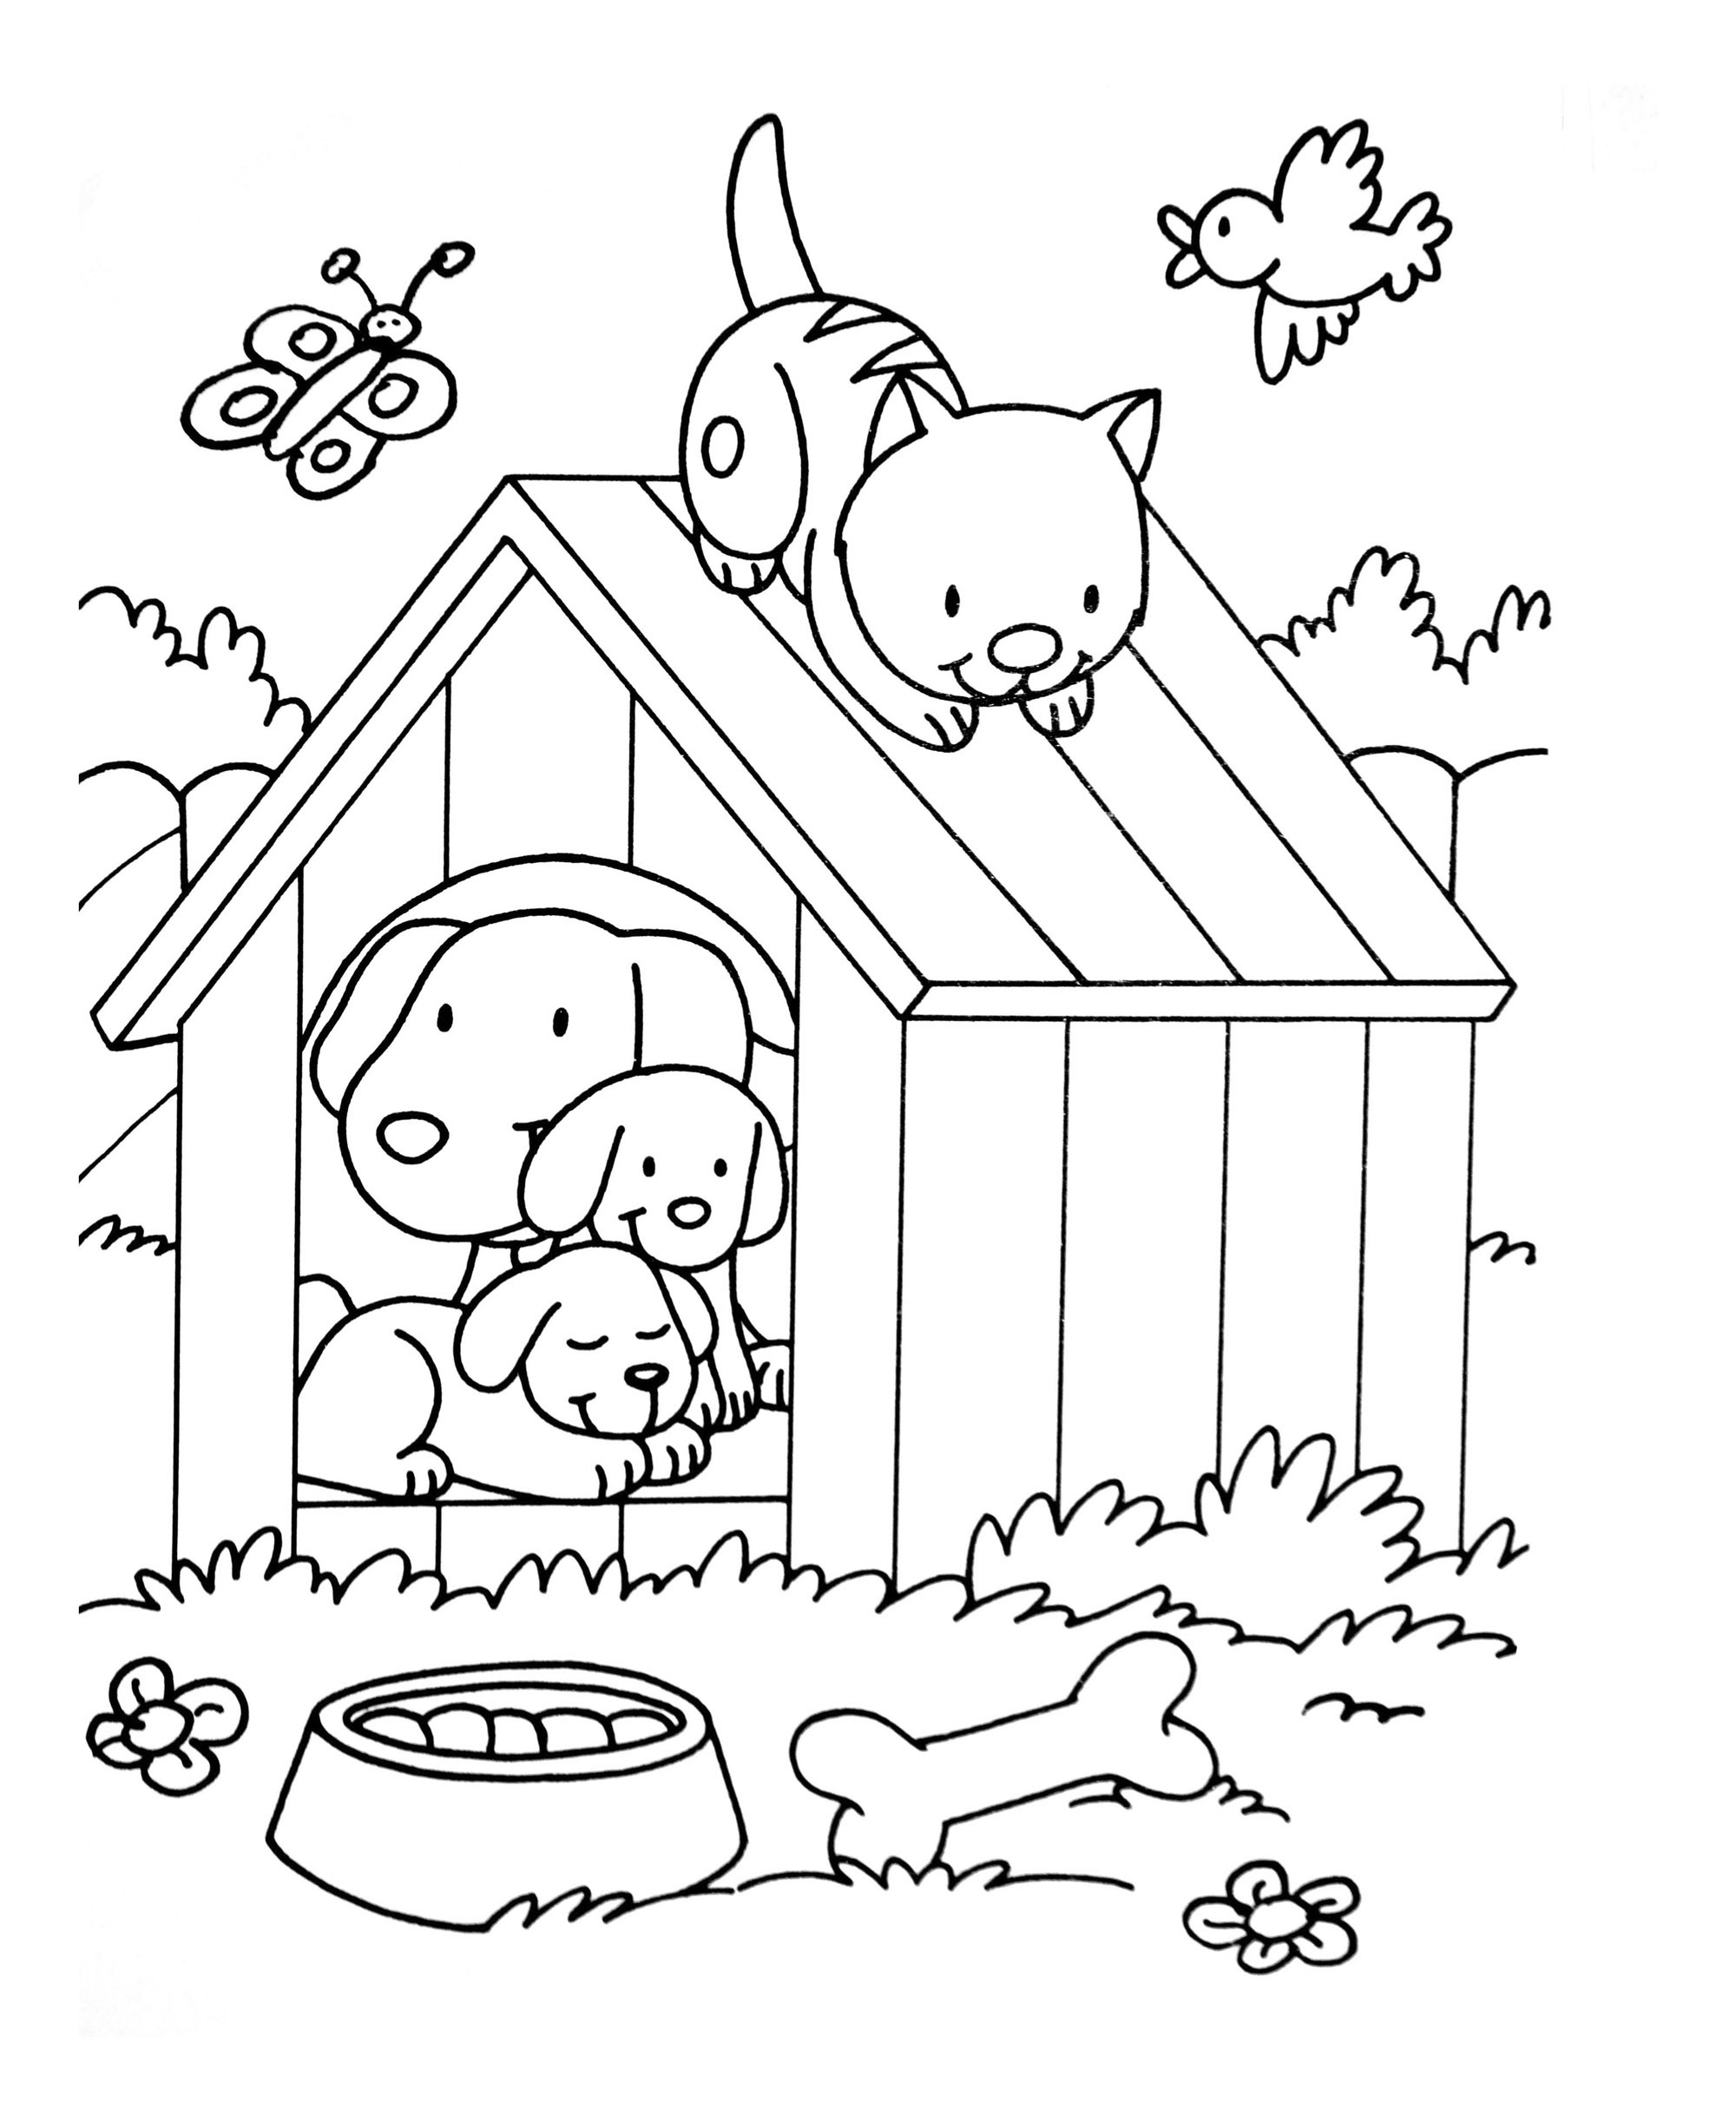 cats and dogs coloring pages - photo#43